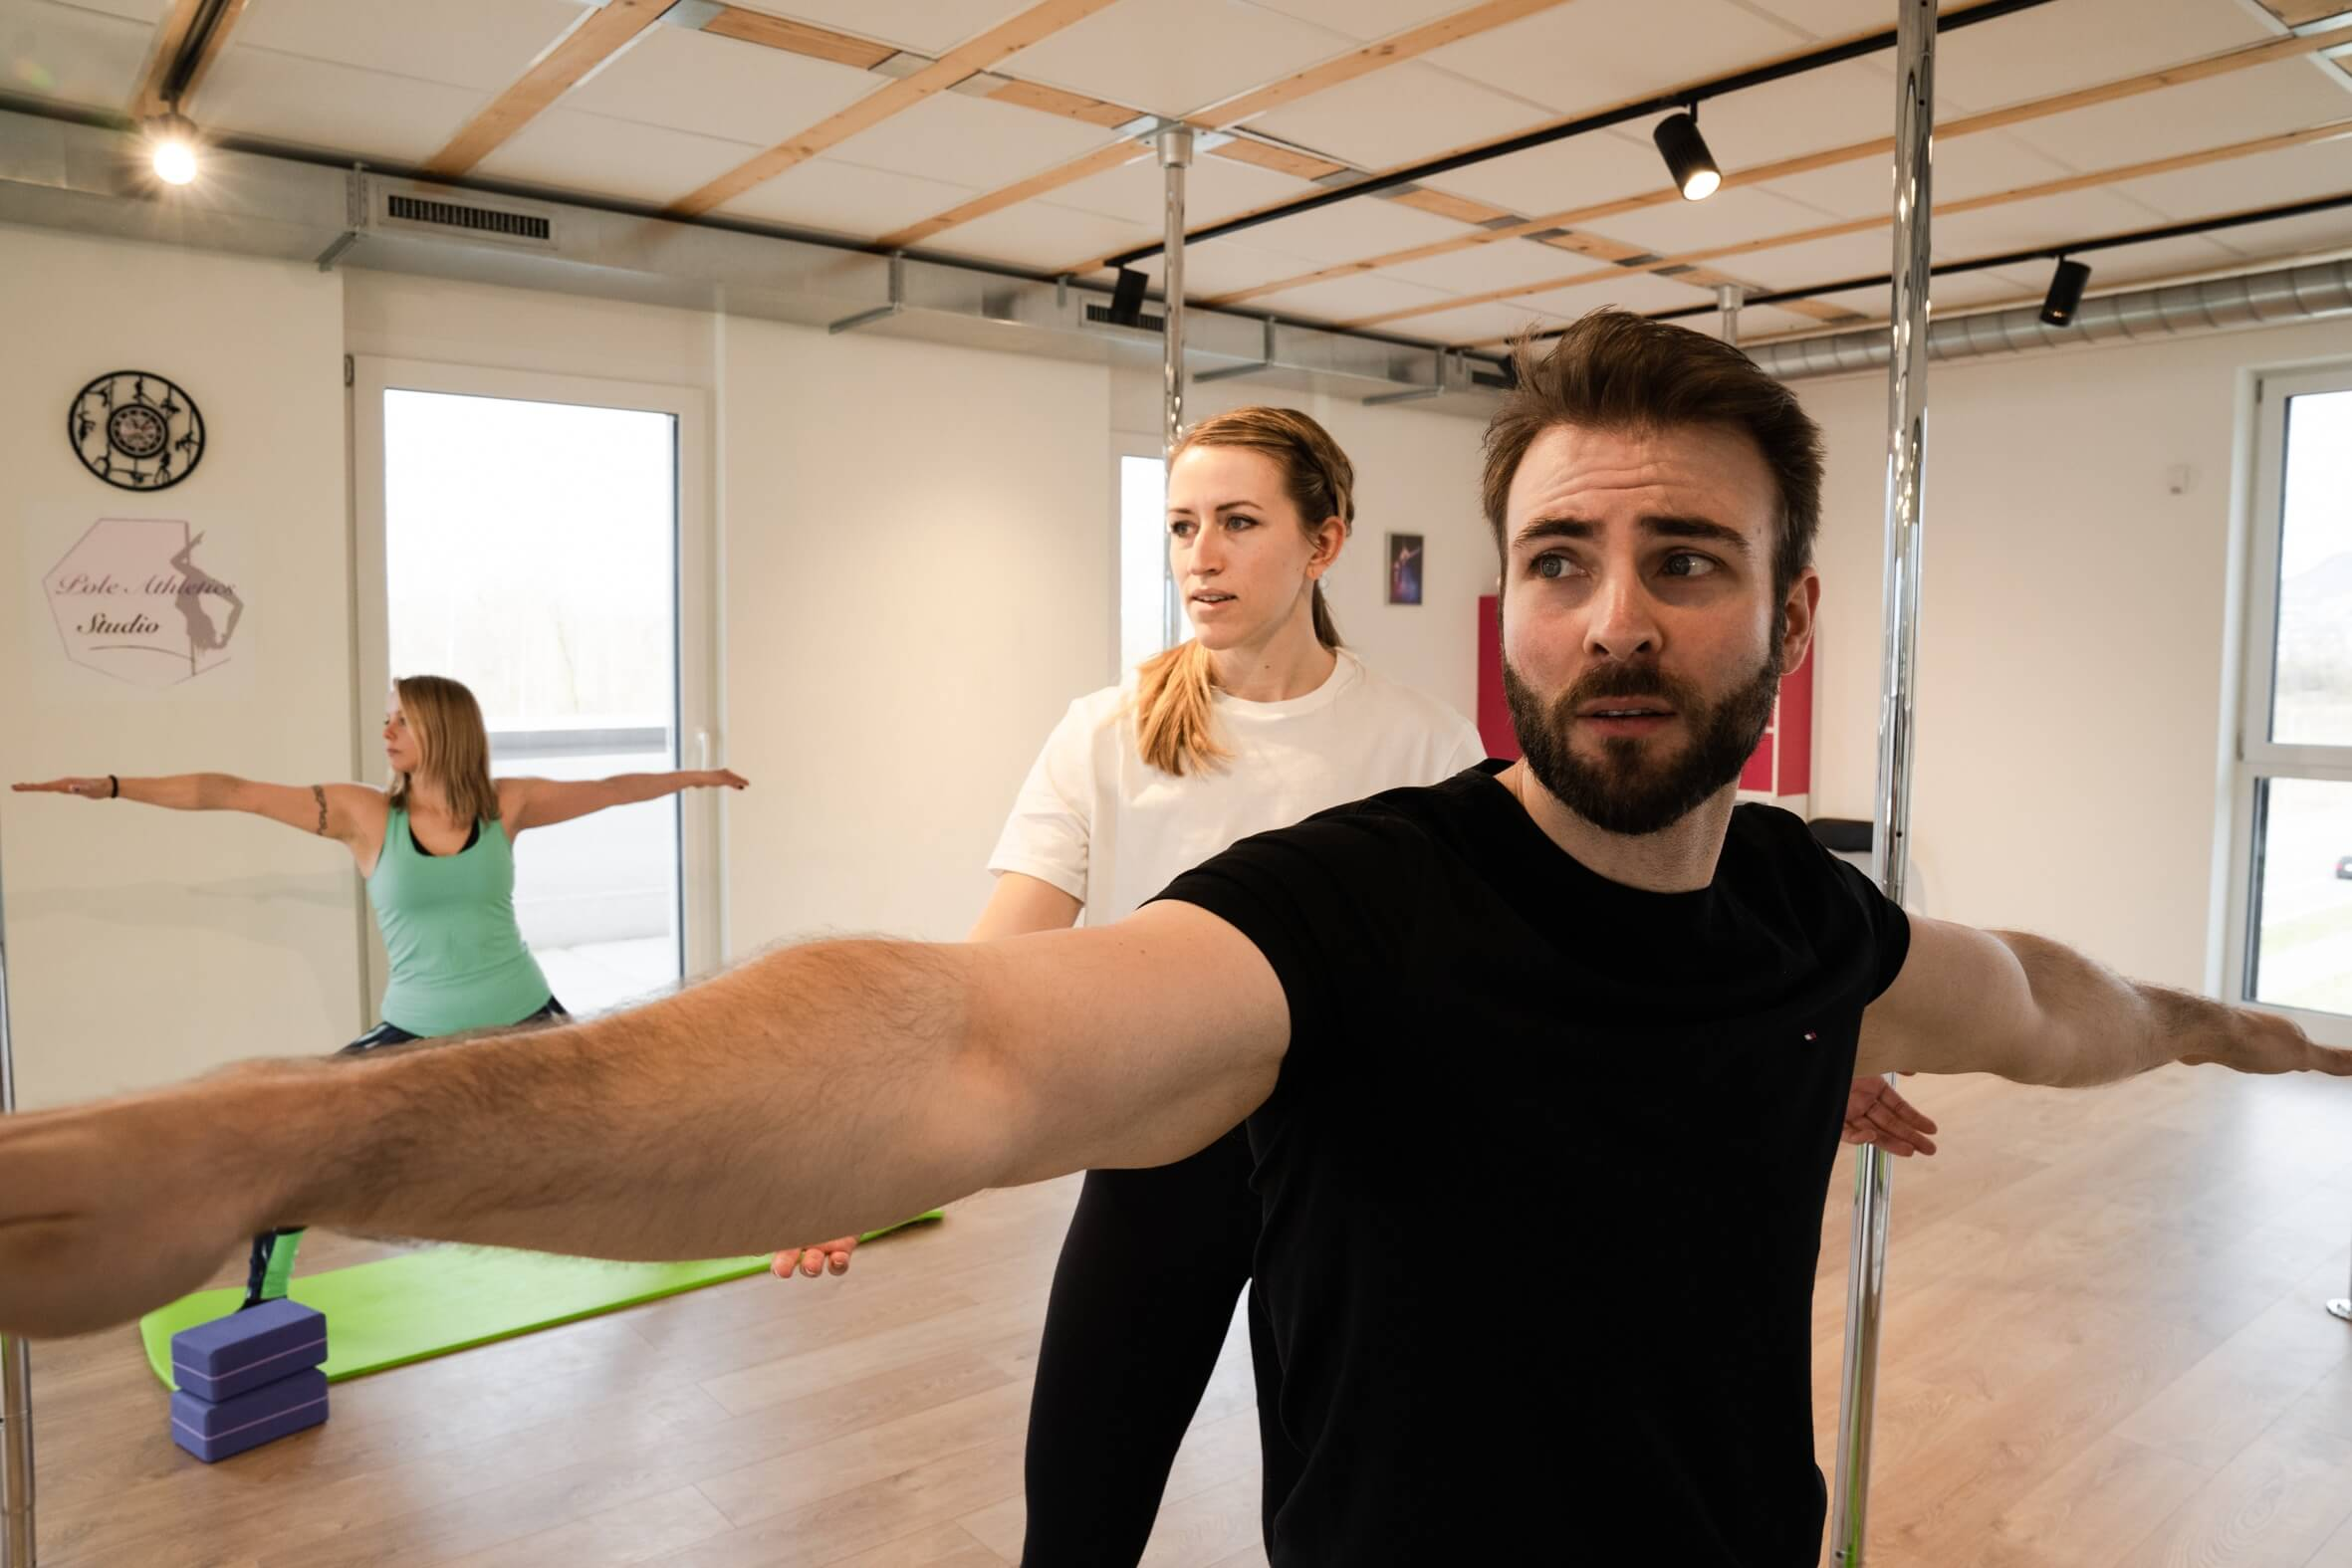 cours-collectifs-fitness-noville-vaud-2